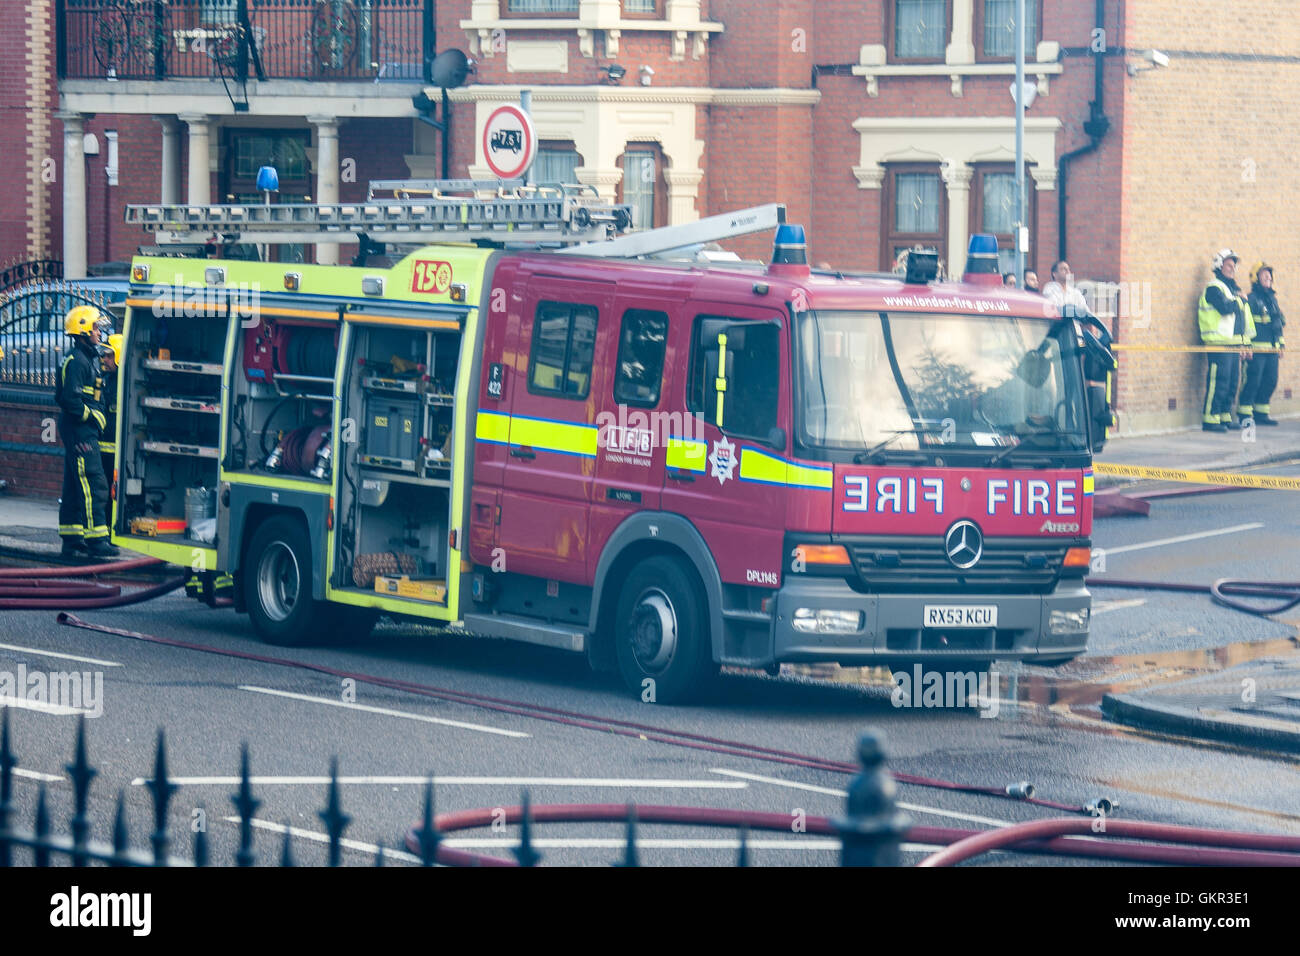 LFB Mercedes Fire Engine At The Scene Of A Fire.   Stock Image